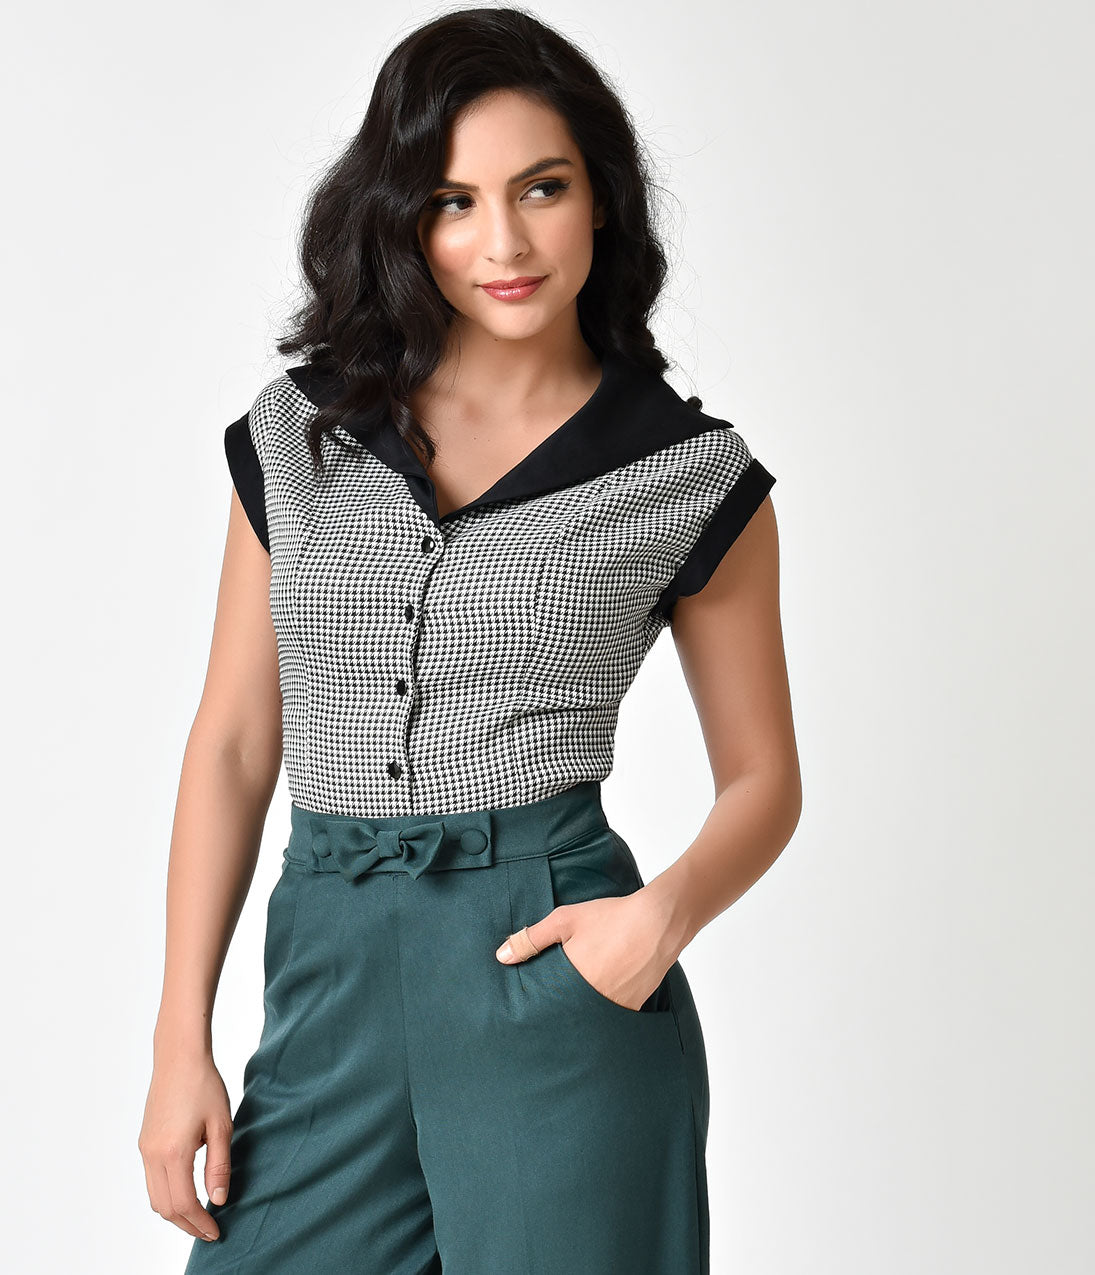 1940s Blouses and Tops Banned Retro Style Black  White Houndstooth Cap Sleeve Izzy Blouse $52.00 AT vintagedancer.com